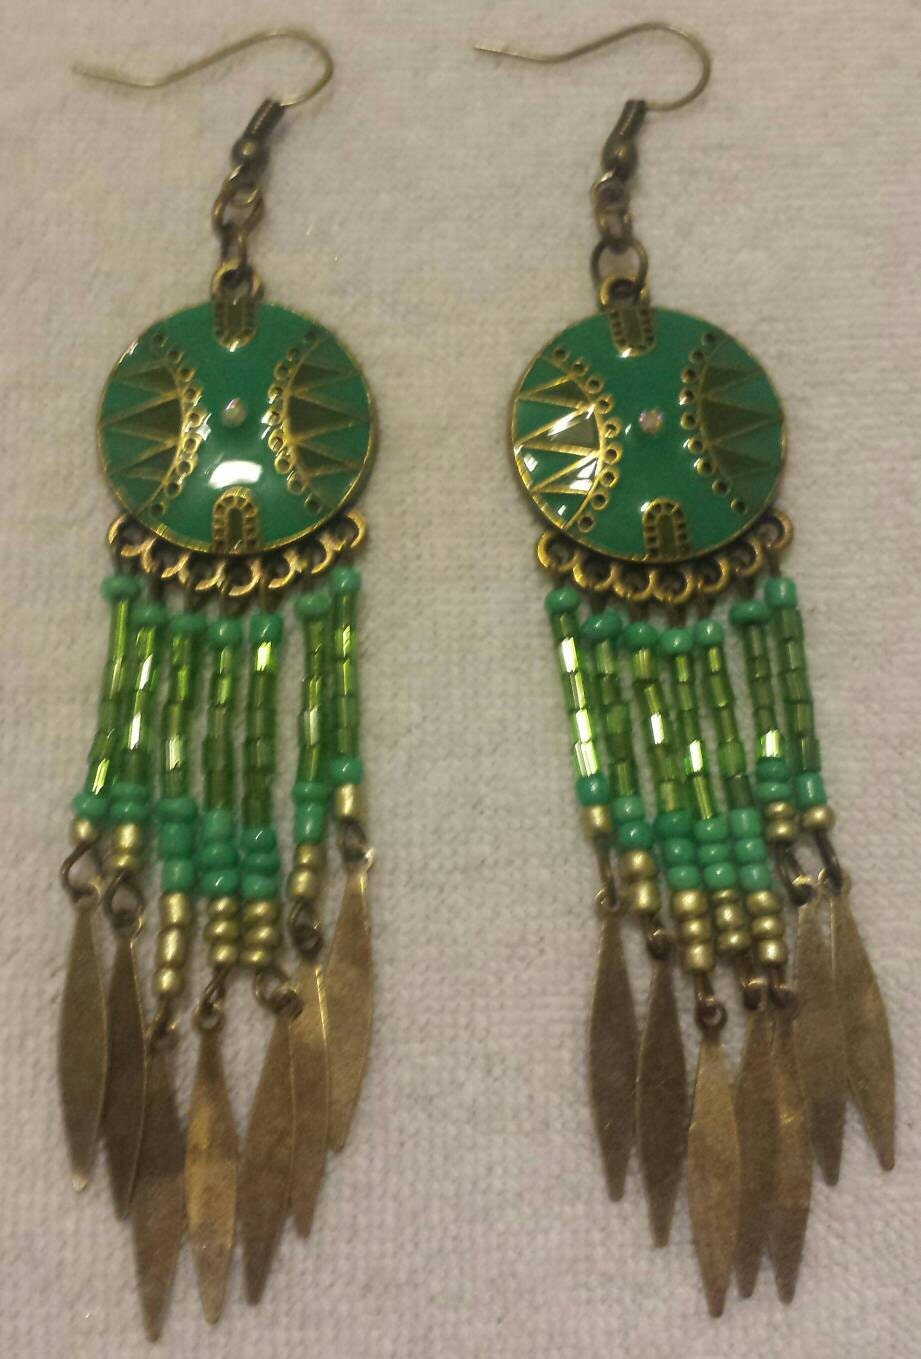 Green and Bronze Fringe Dangle Earrings Trible Earrings Handmade Earrings Gifts for Her Indian Inspired Earrings Fashion Dangle Earrings